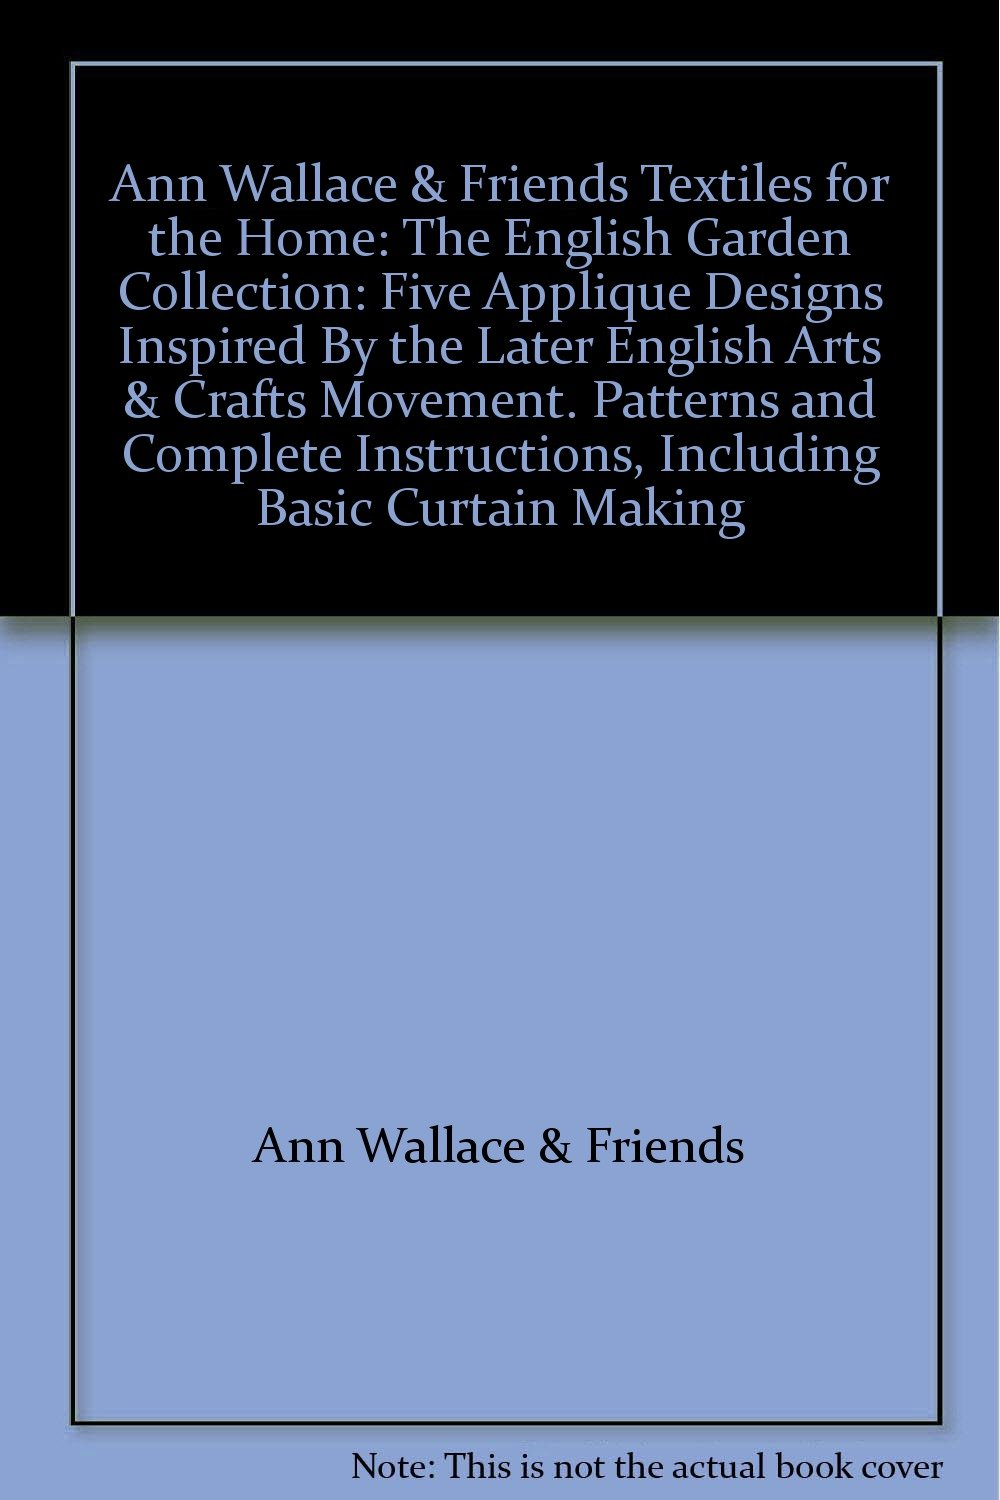 Ann Wallace & Friends Textiles for the Home: The English Garden Collection: Five Applique Designs Inspired By the Later English Arts & Crafts Movement. Patterns and Complete Instructions, Including Basic Curtain Making